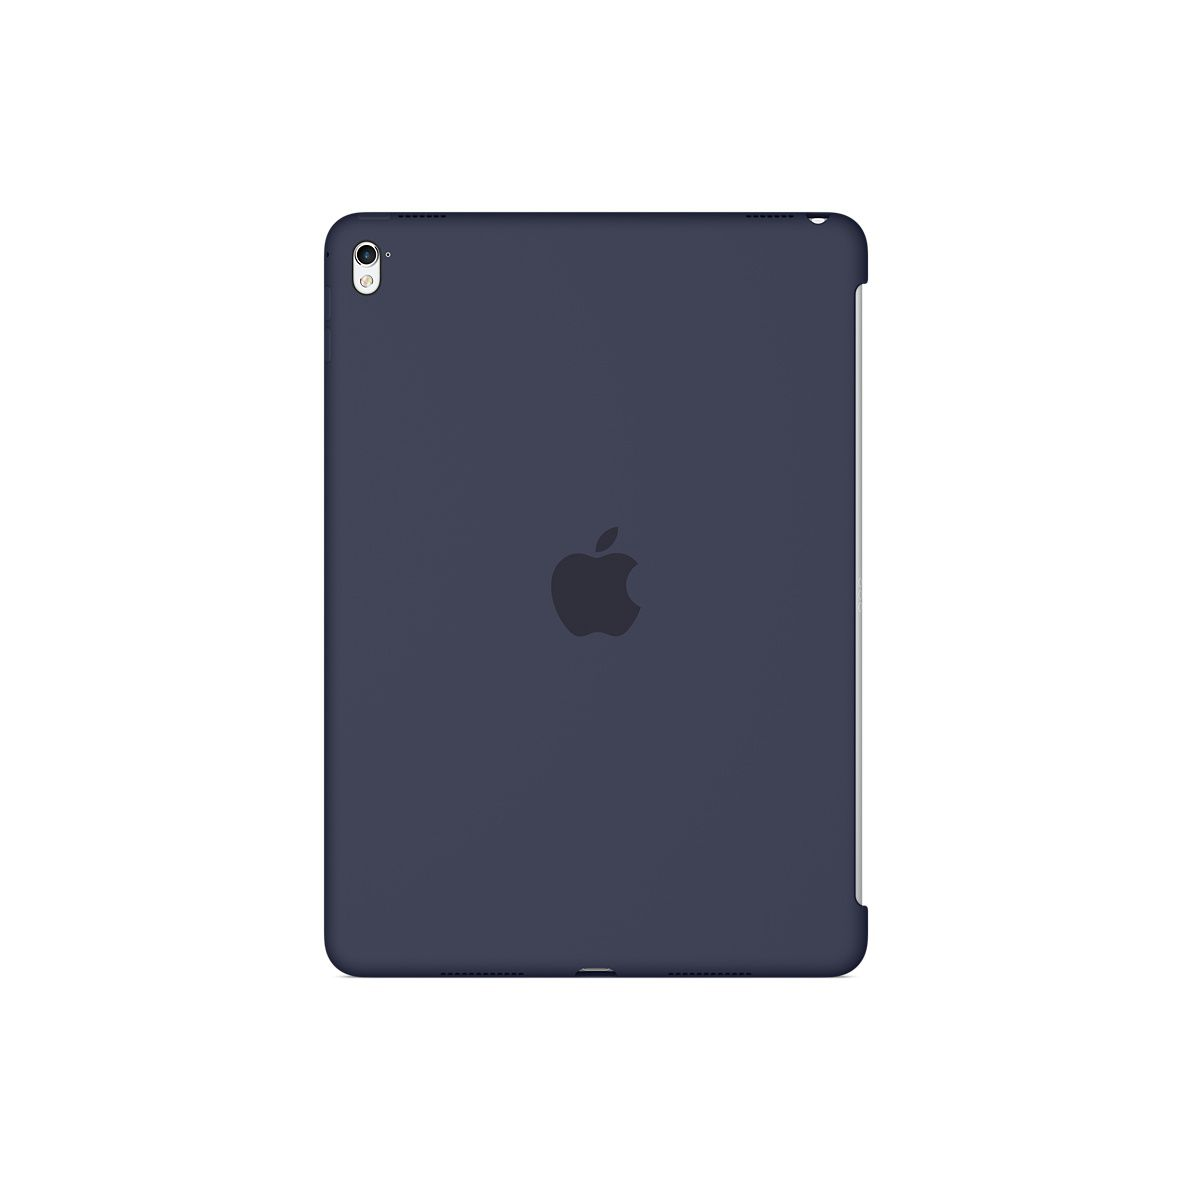 Coque APPLE iPad Pro 9.7'' silicone bleu nuit (photo)